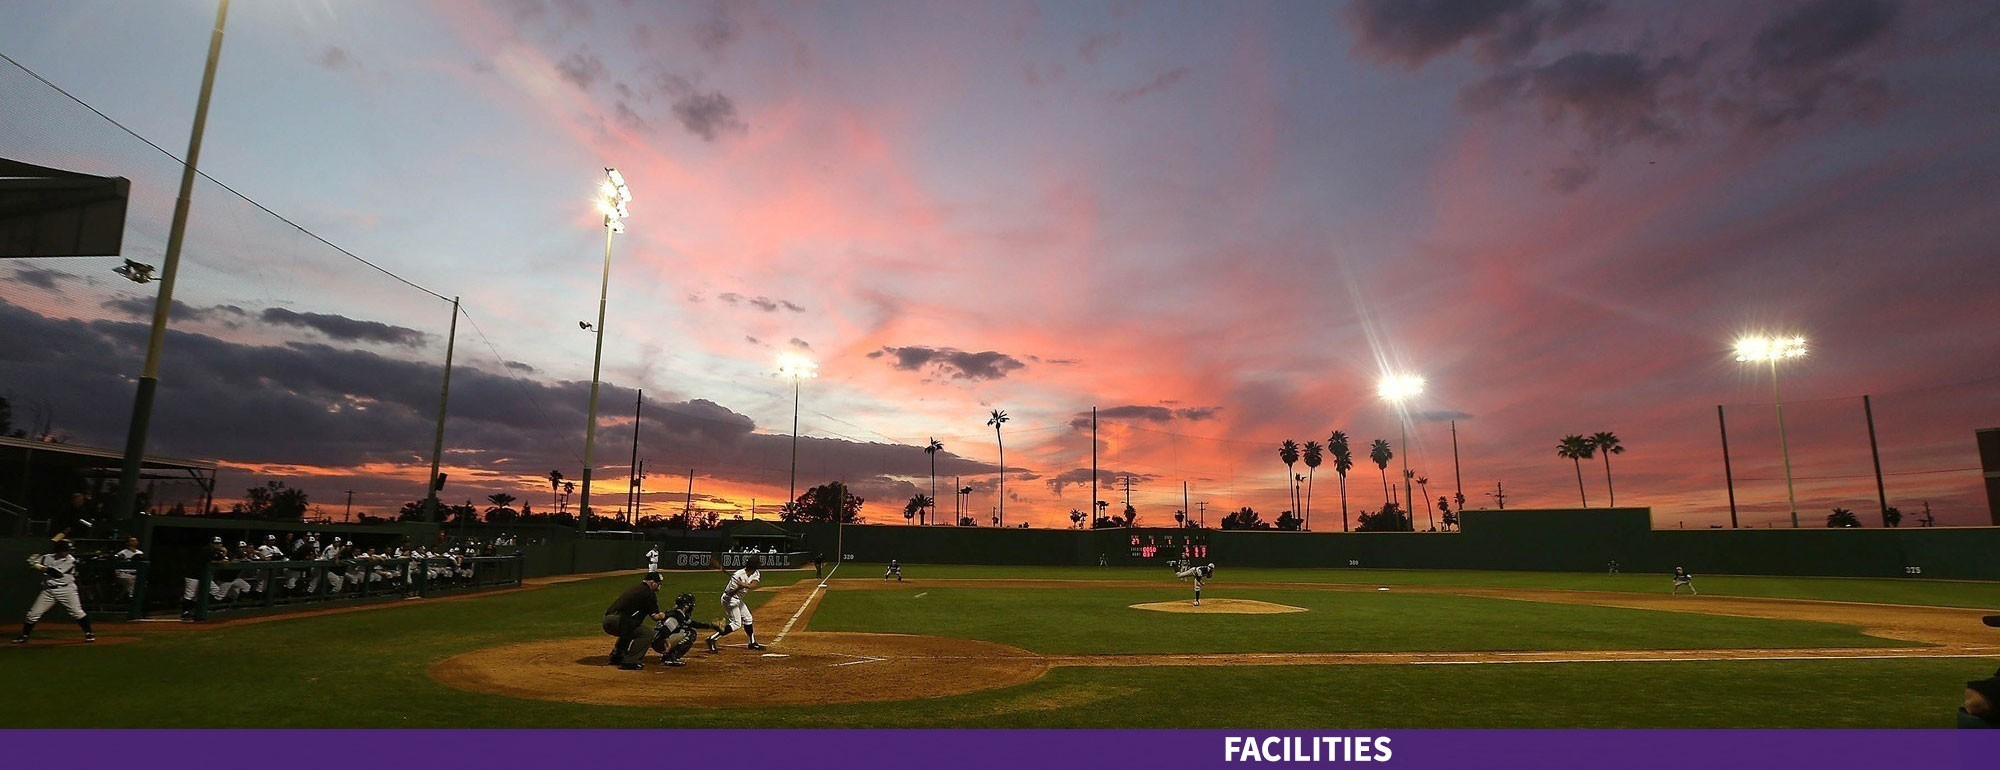 grand canyon university Grand canyon university made it into the san francisco regional in the 16th  spot and looks forward to showcasing their talent on the big.